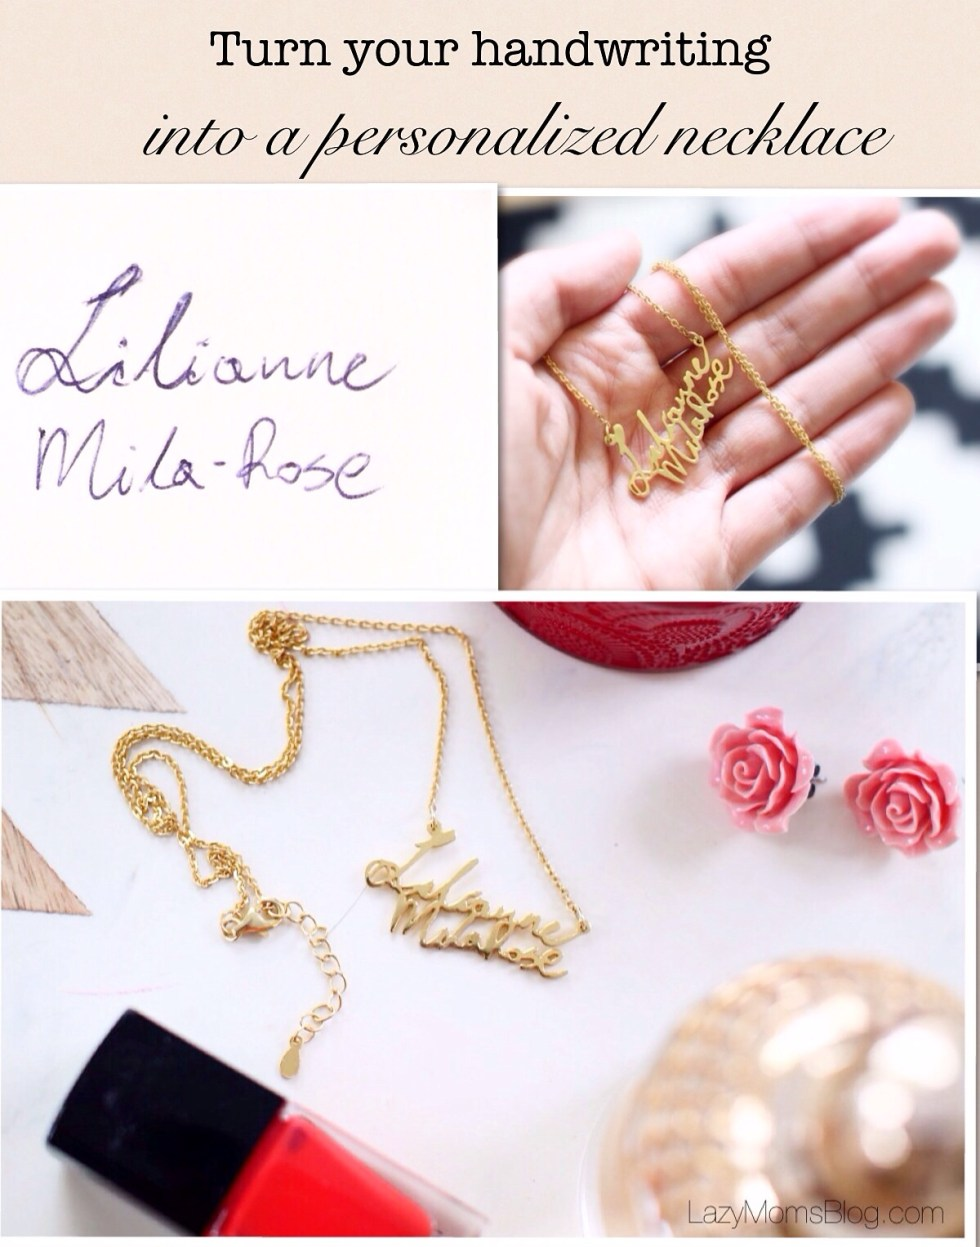 How to turn your handwriting into a personalized necklace